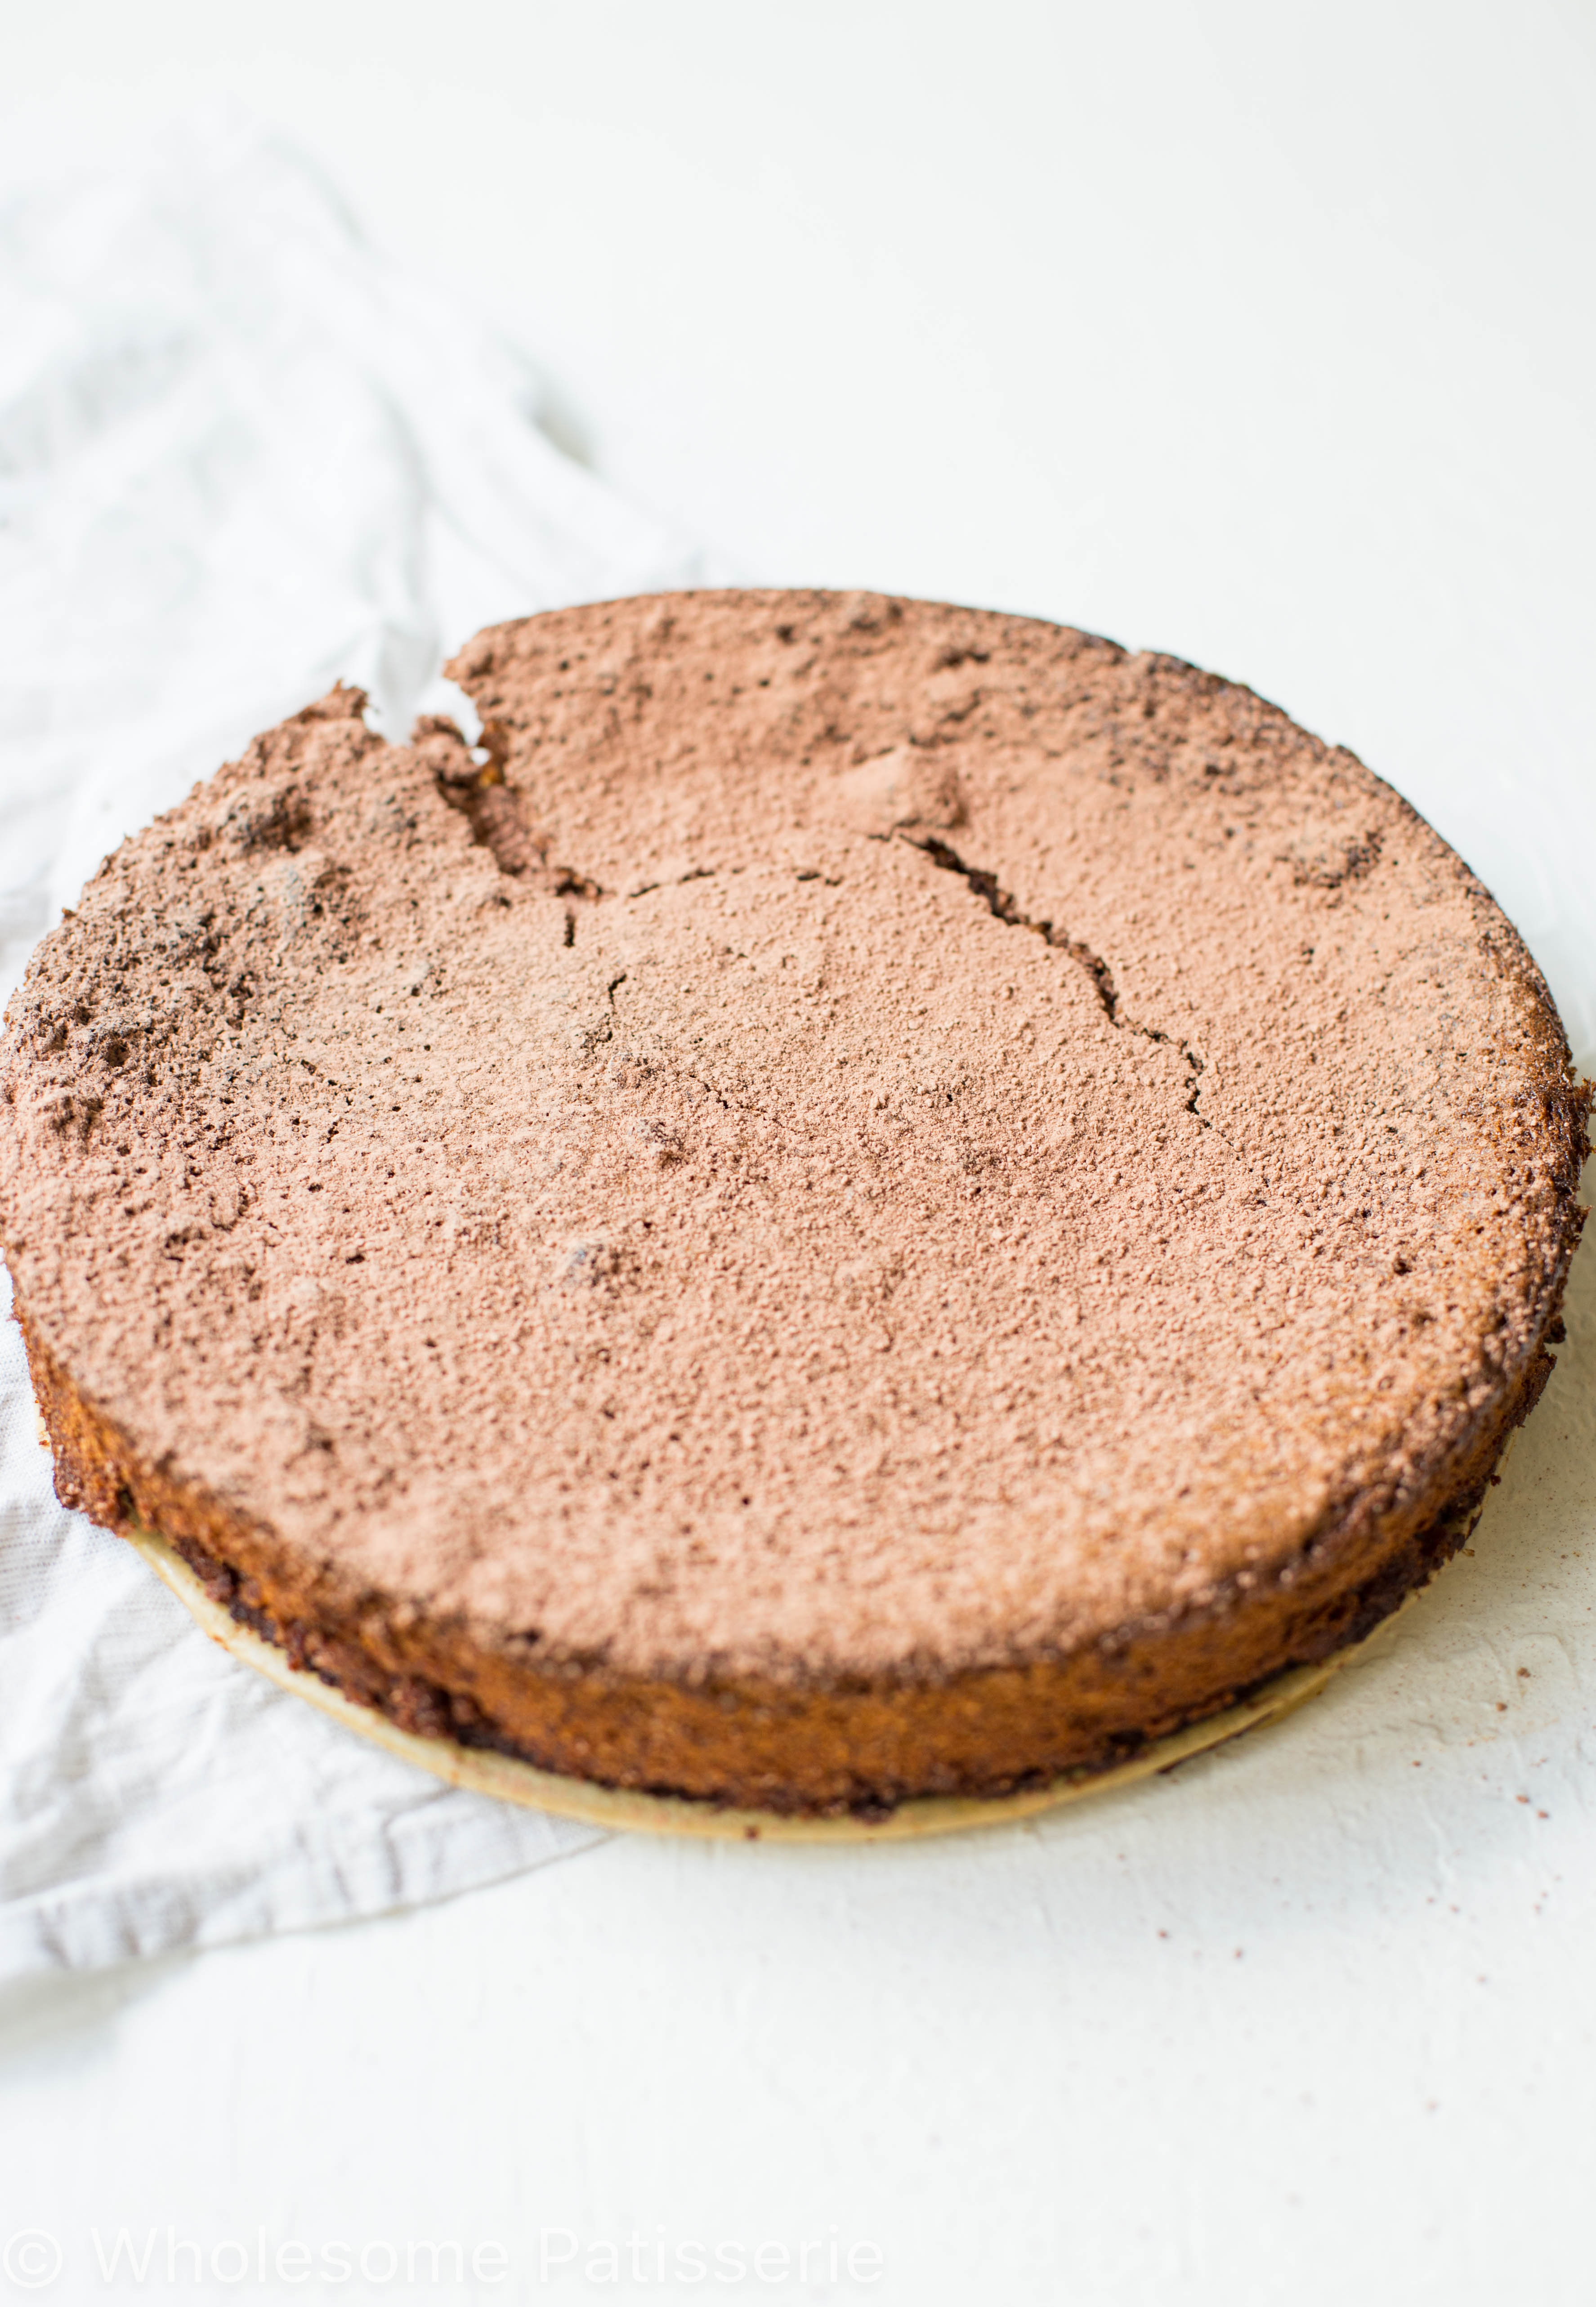 gluten-free-flourless-chocolate-cake-recipe-chocolate-baking-delicious